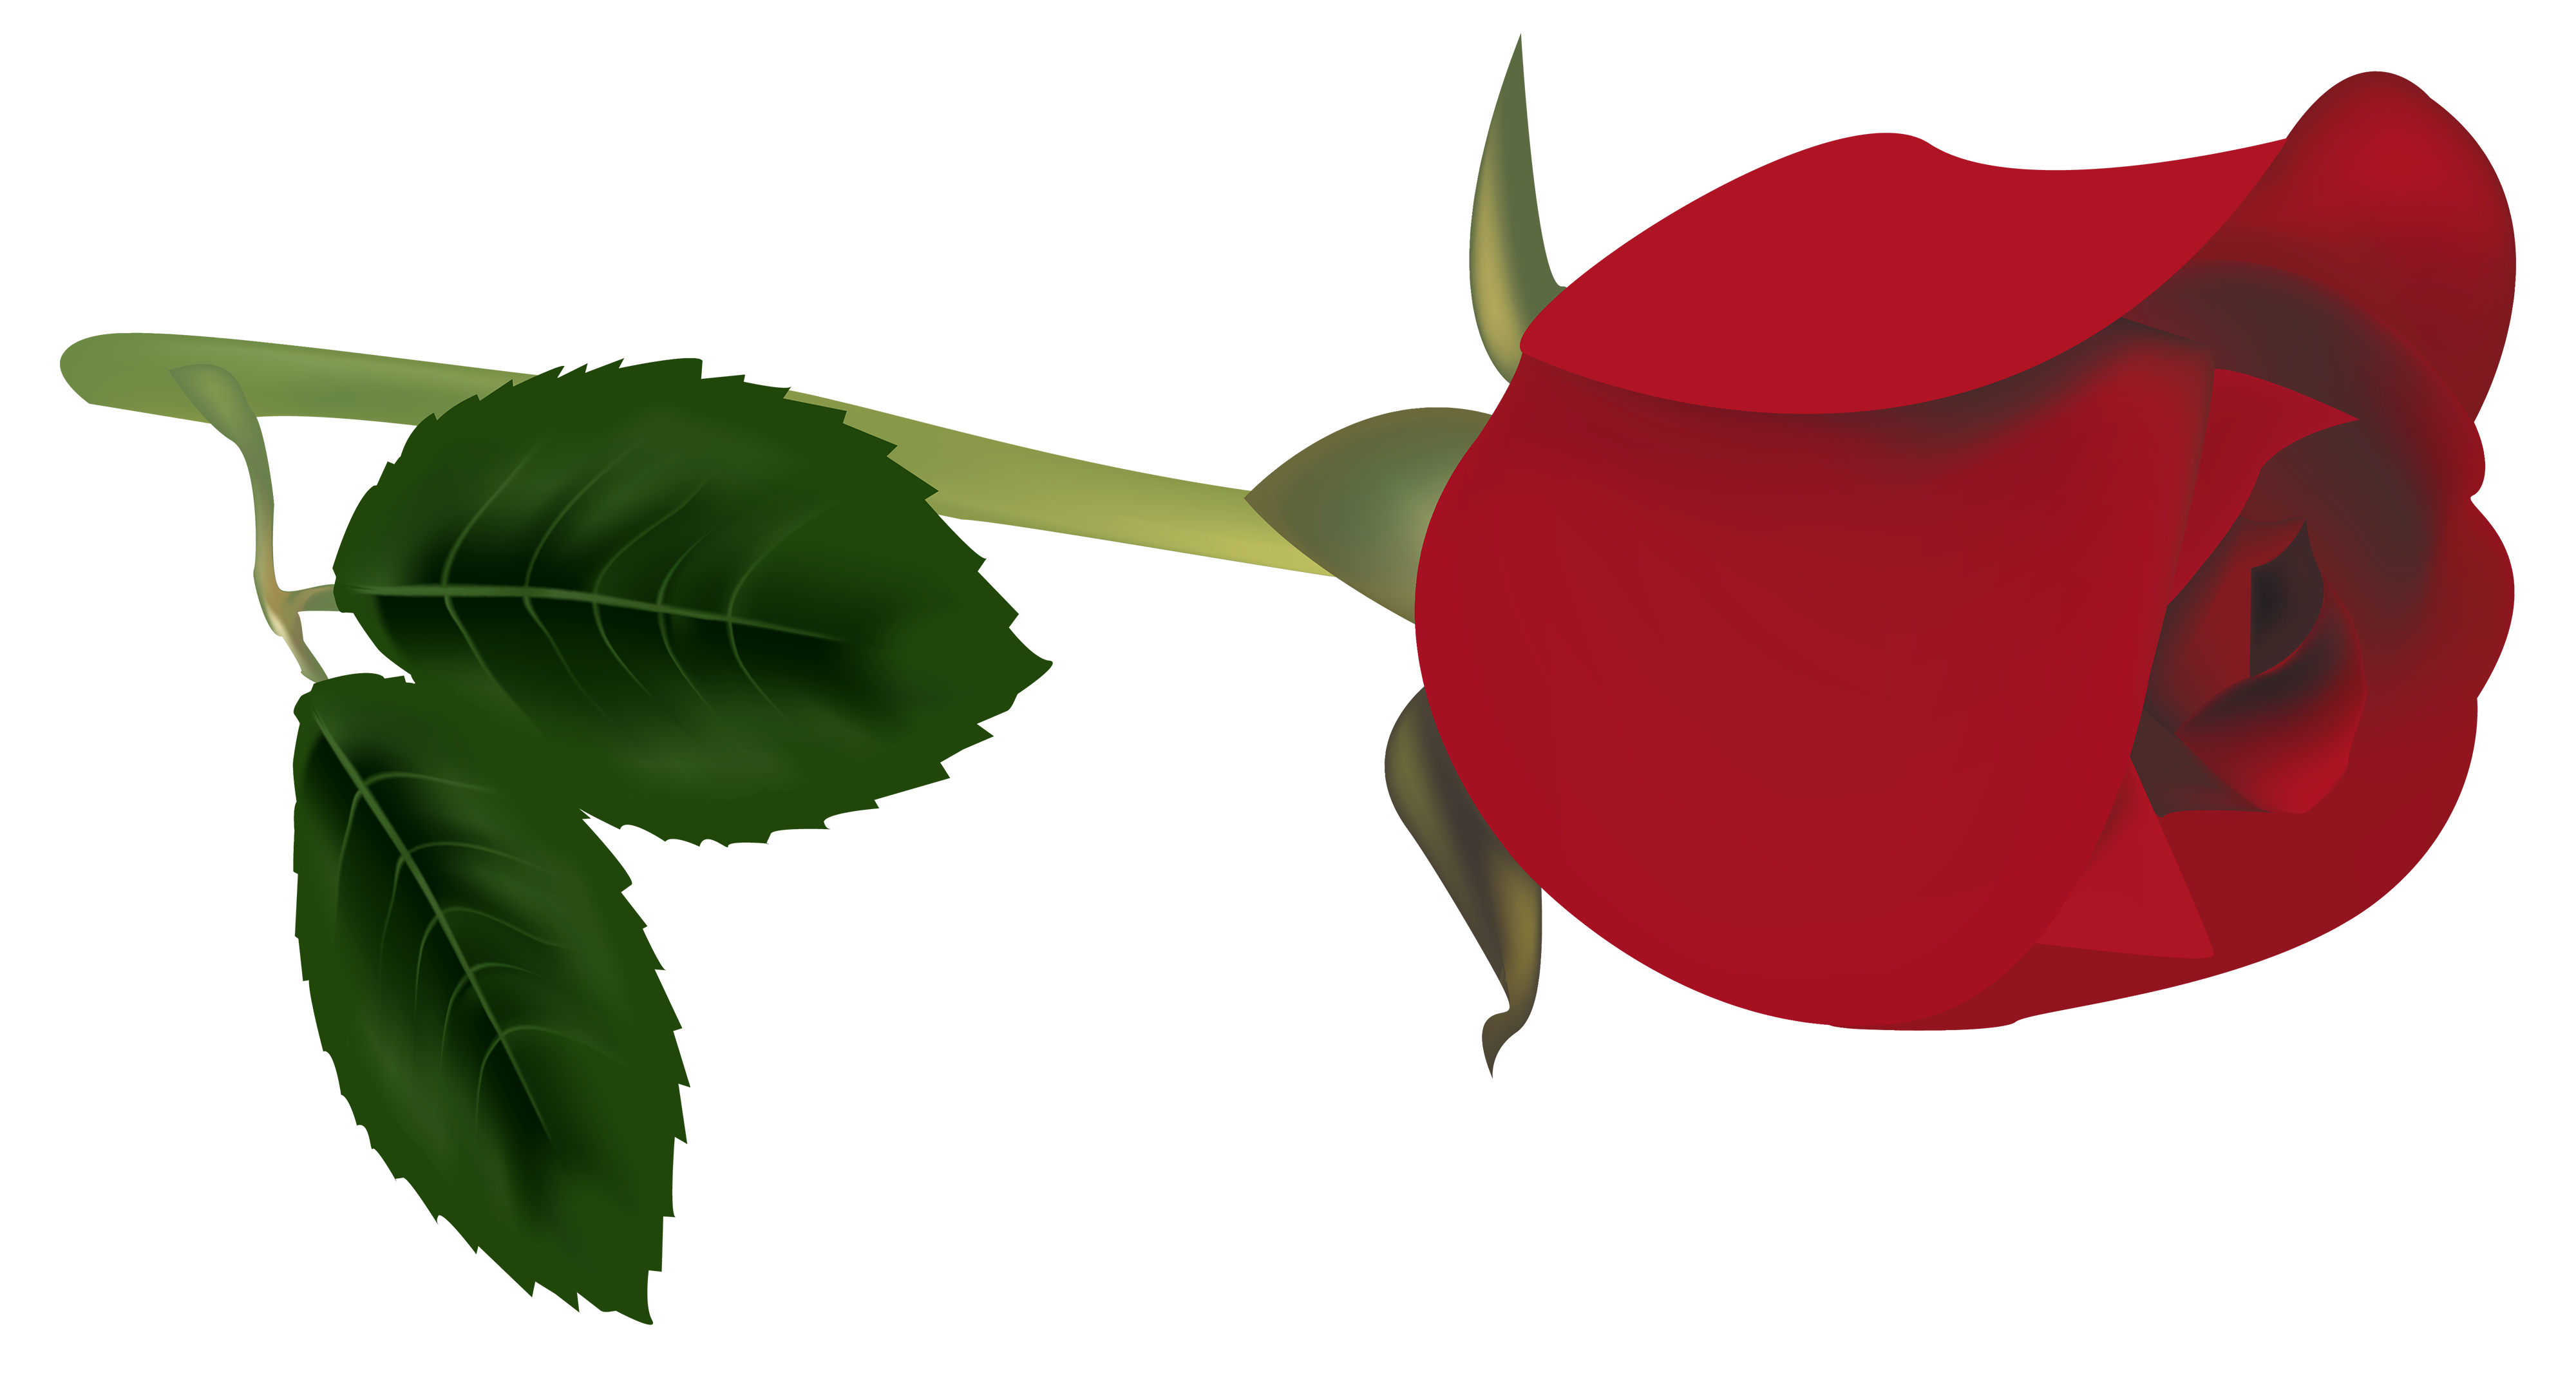 Family clipart red. Rose bud png best